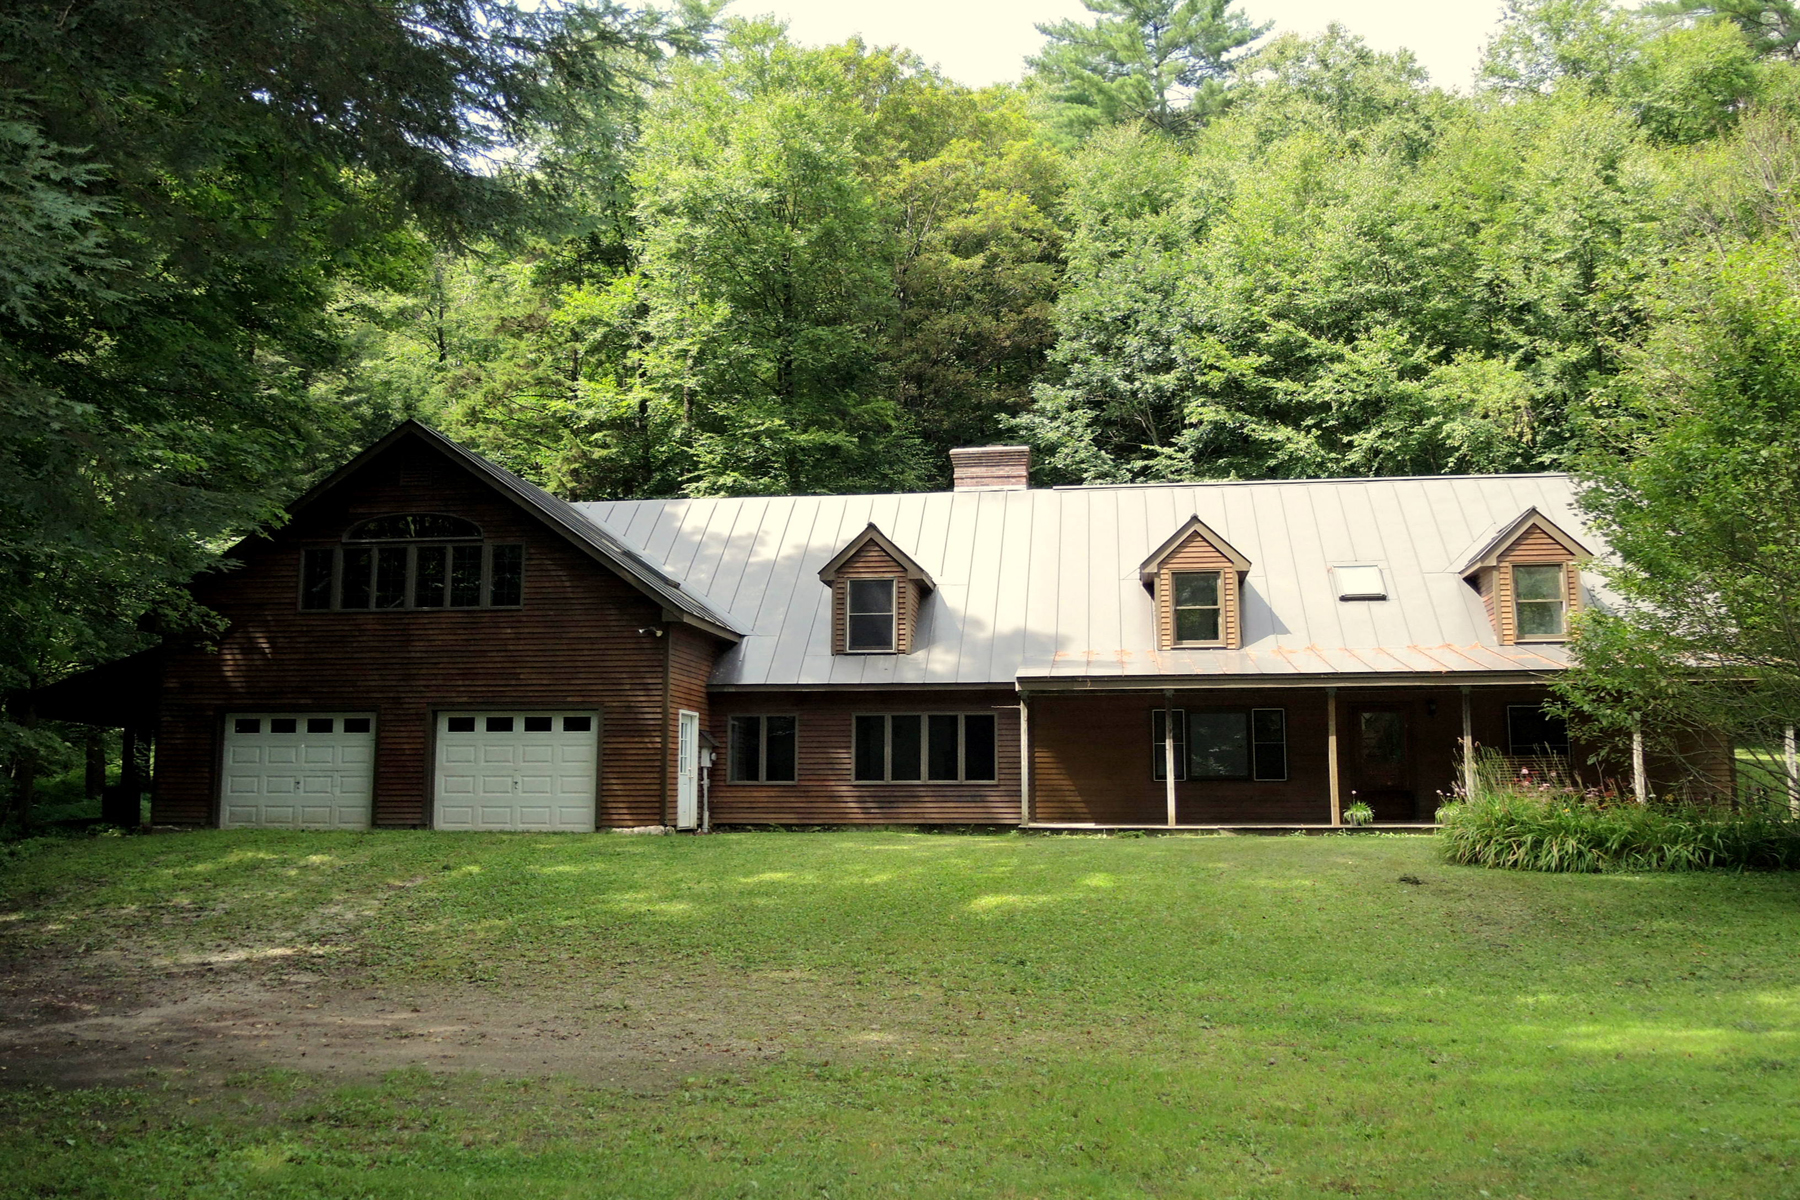 Single Family Homes for Sale at Tranquil Retreat on Furnace Brook 31 River Rd Chittenden, Vermont 05737 United States